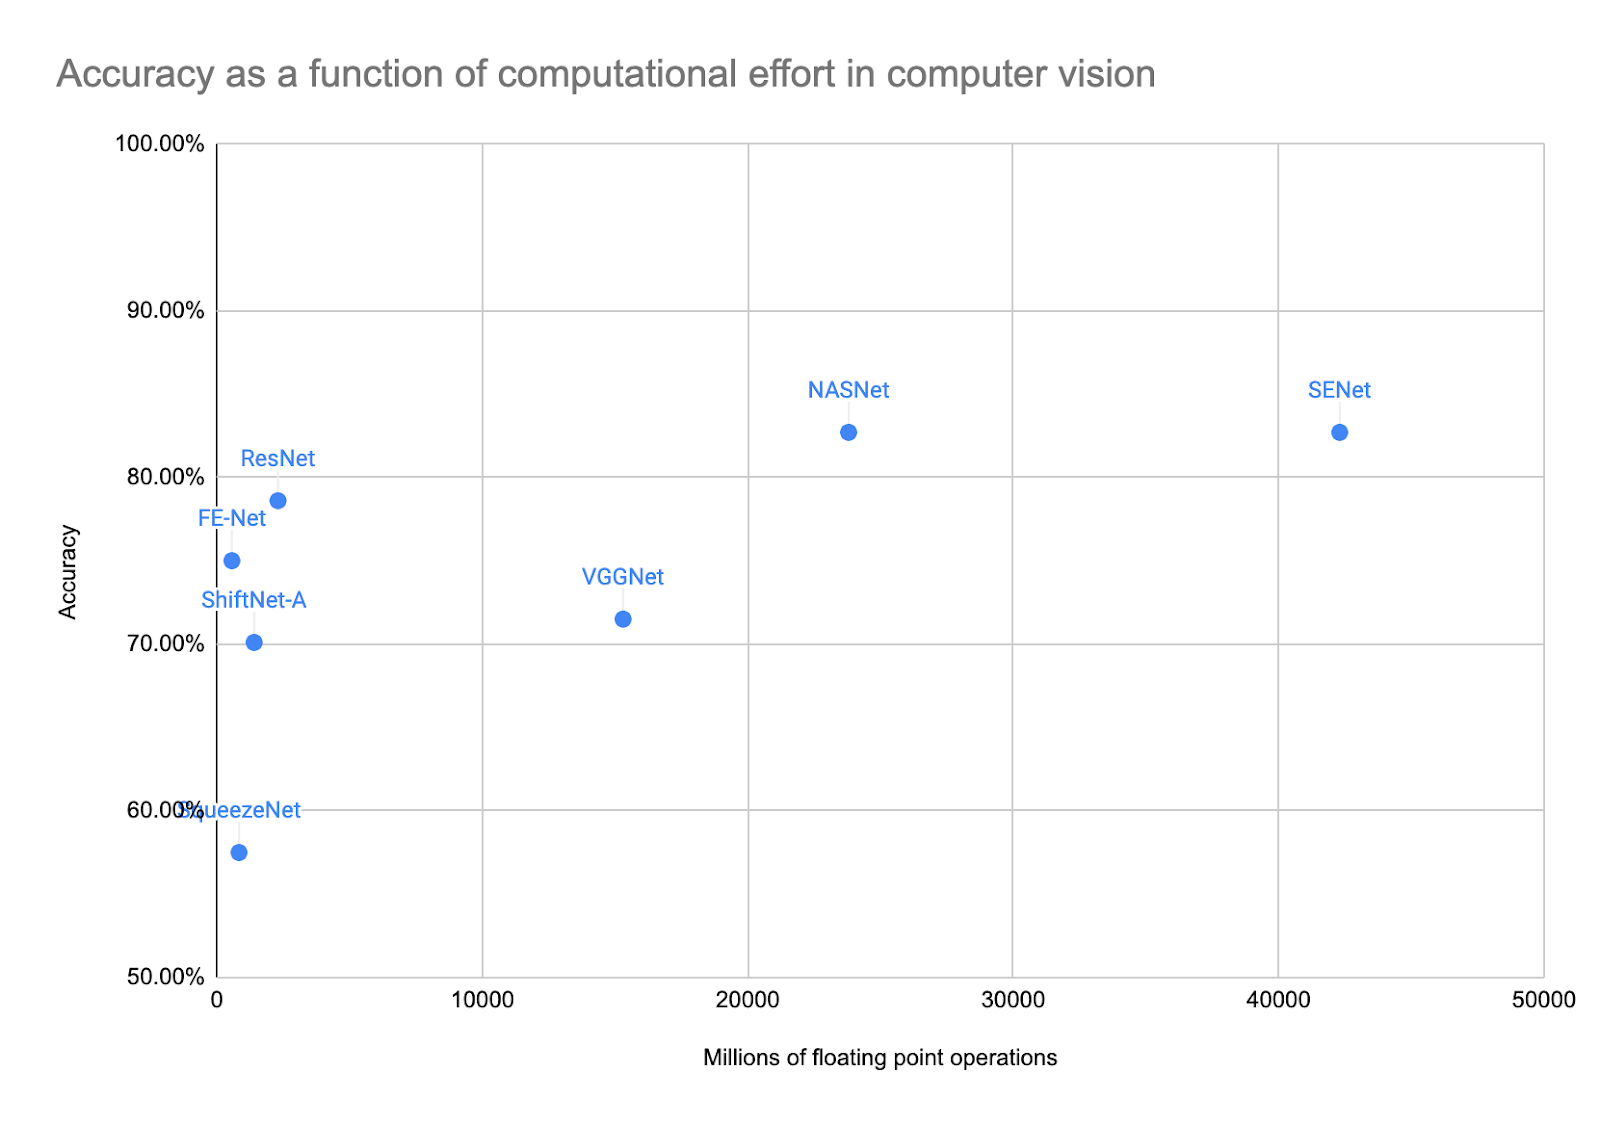 accuracy as a function of computation effort